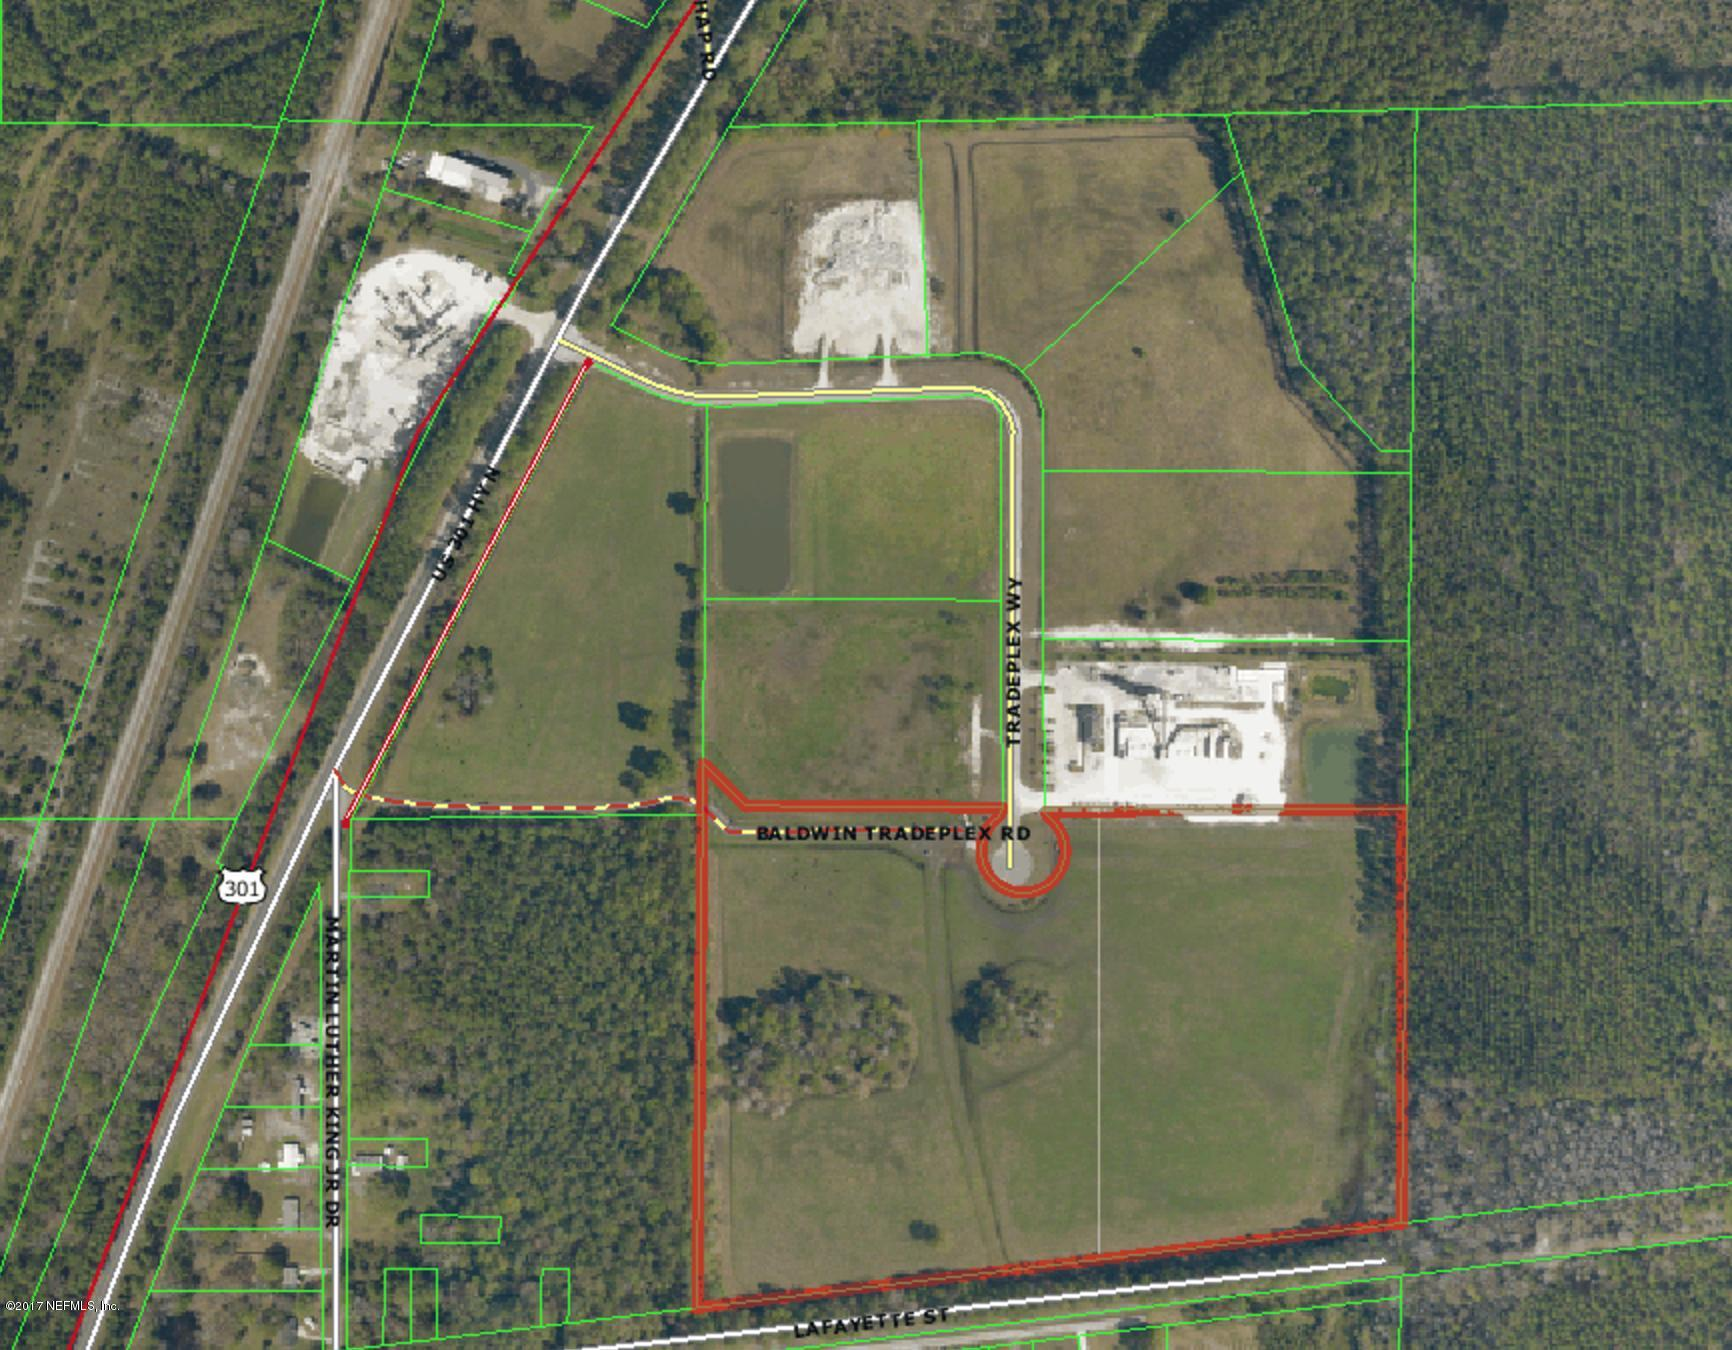 26 TRADEPLEX, JACKSONVILLE, FLORIDA 32234, ,Vacant land,For sale,TRADEPLEX,905400